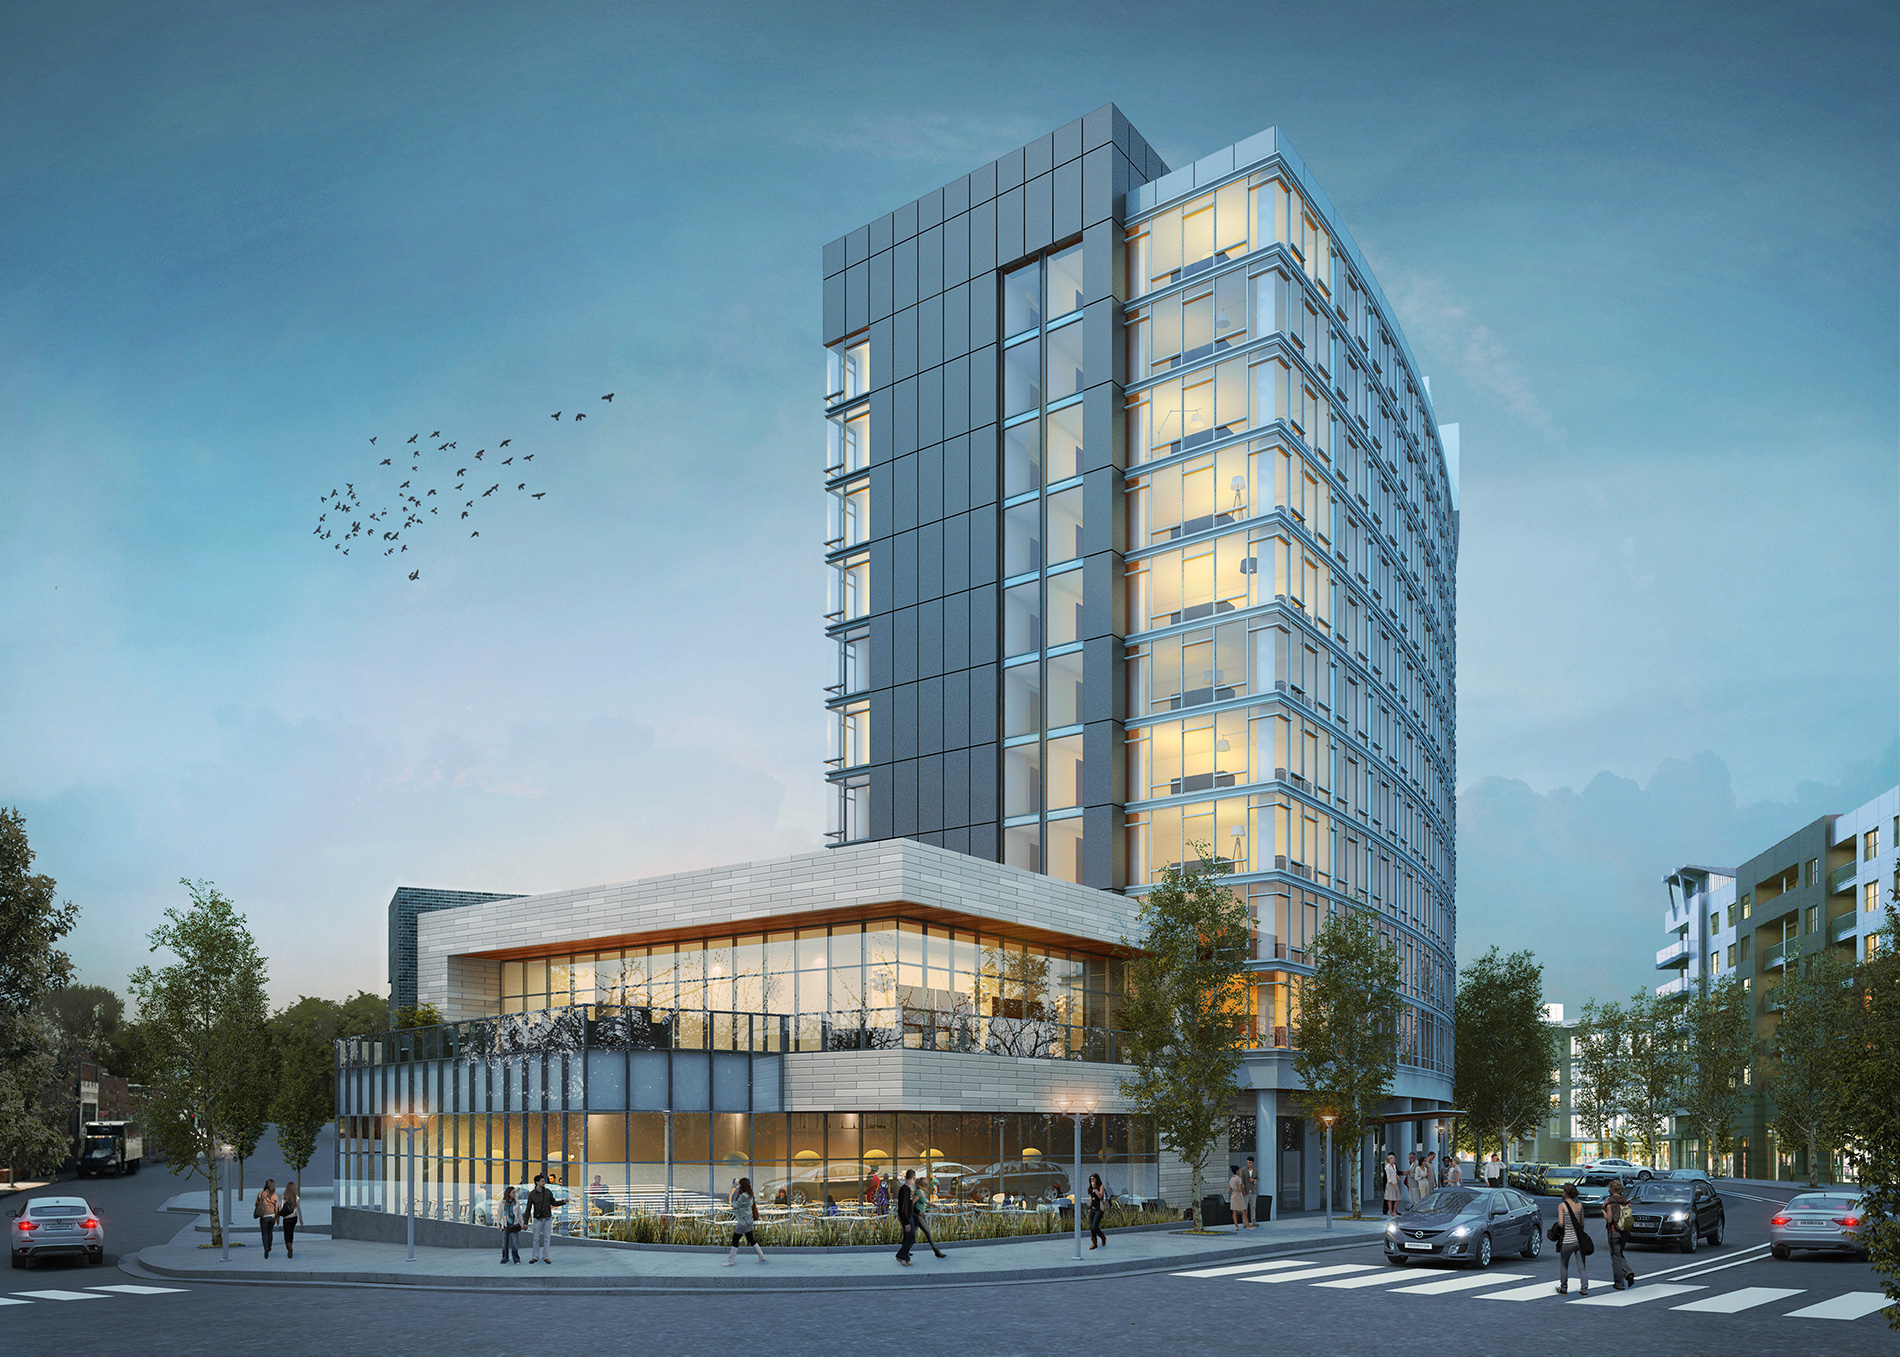 Commune Hotels Amp Resorts Announces Newest Thompson Hotel Will Open In Nashville S The Gulch